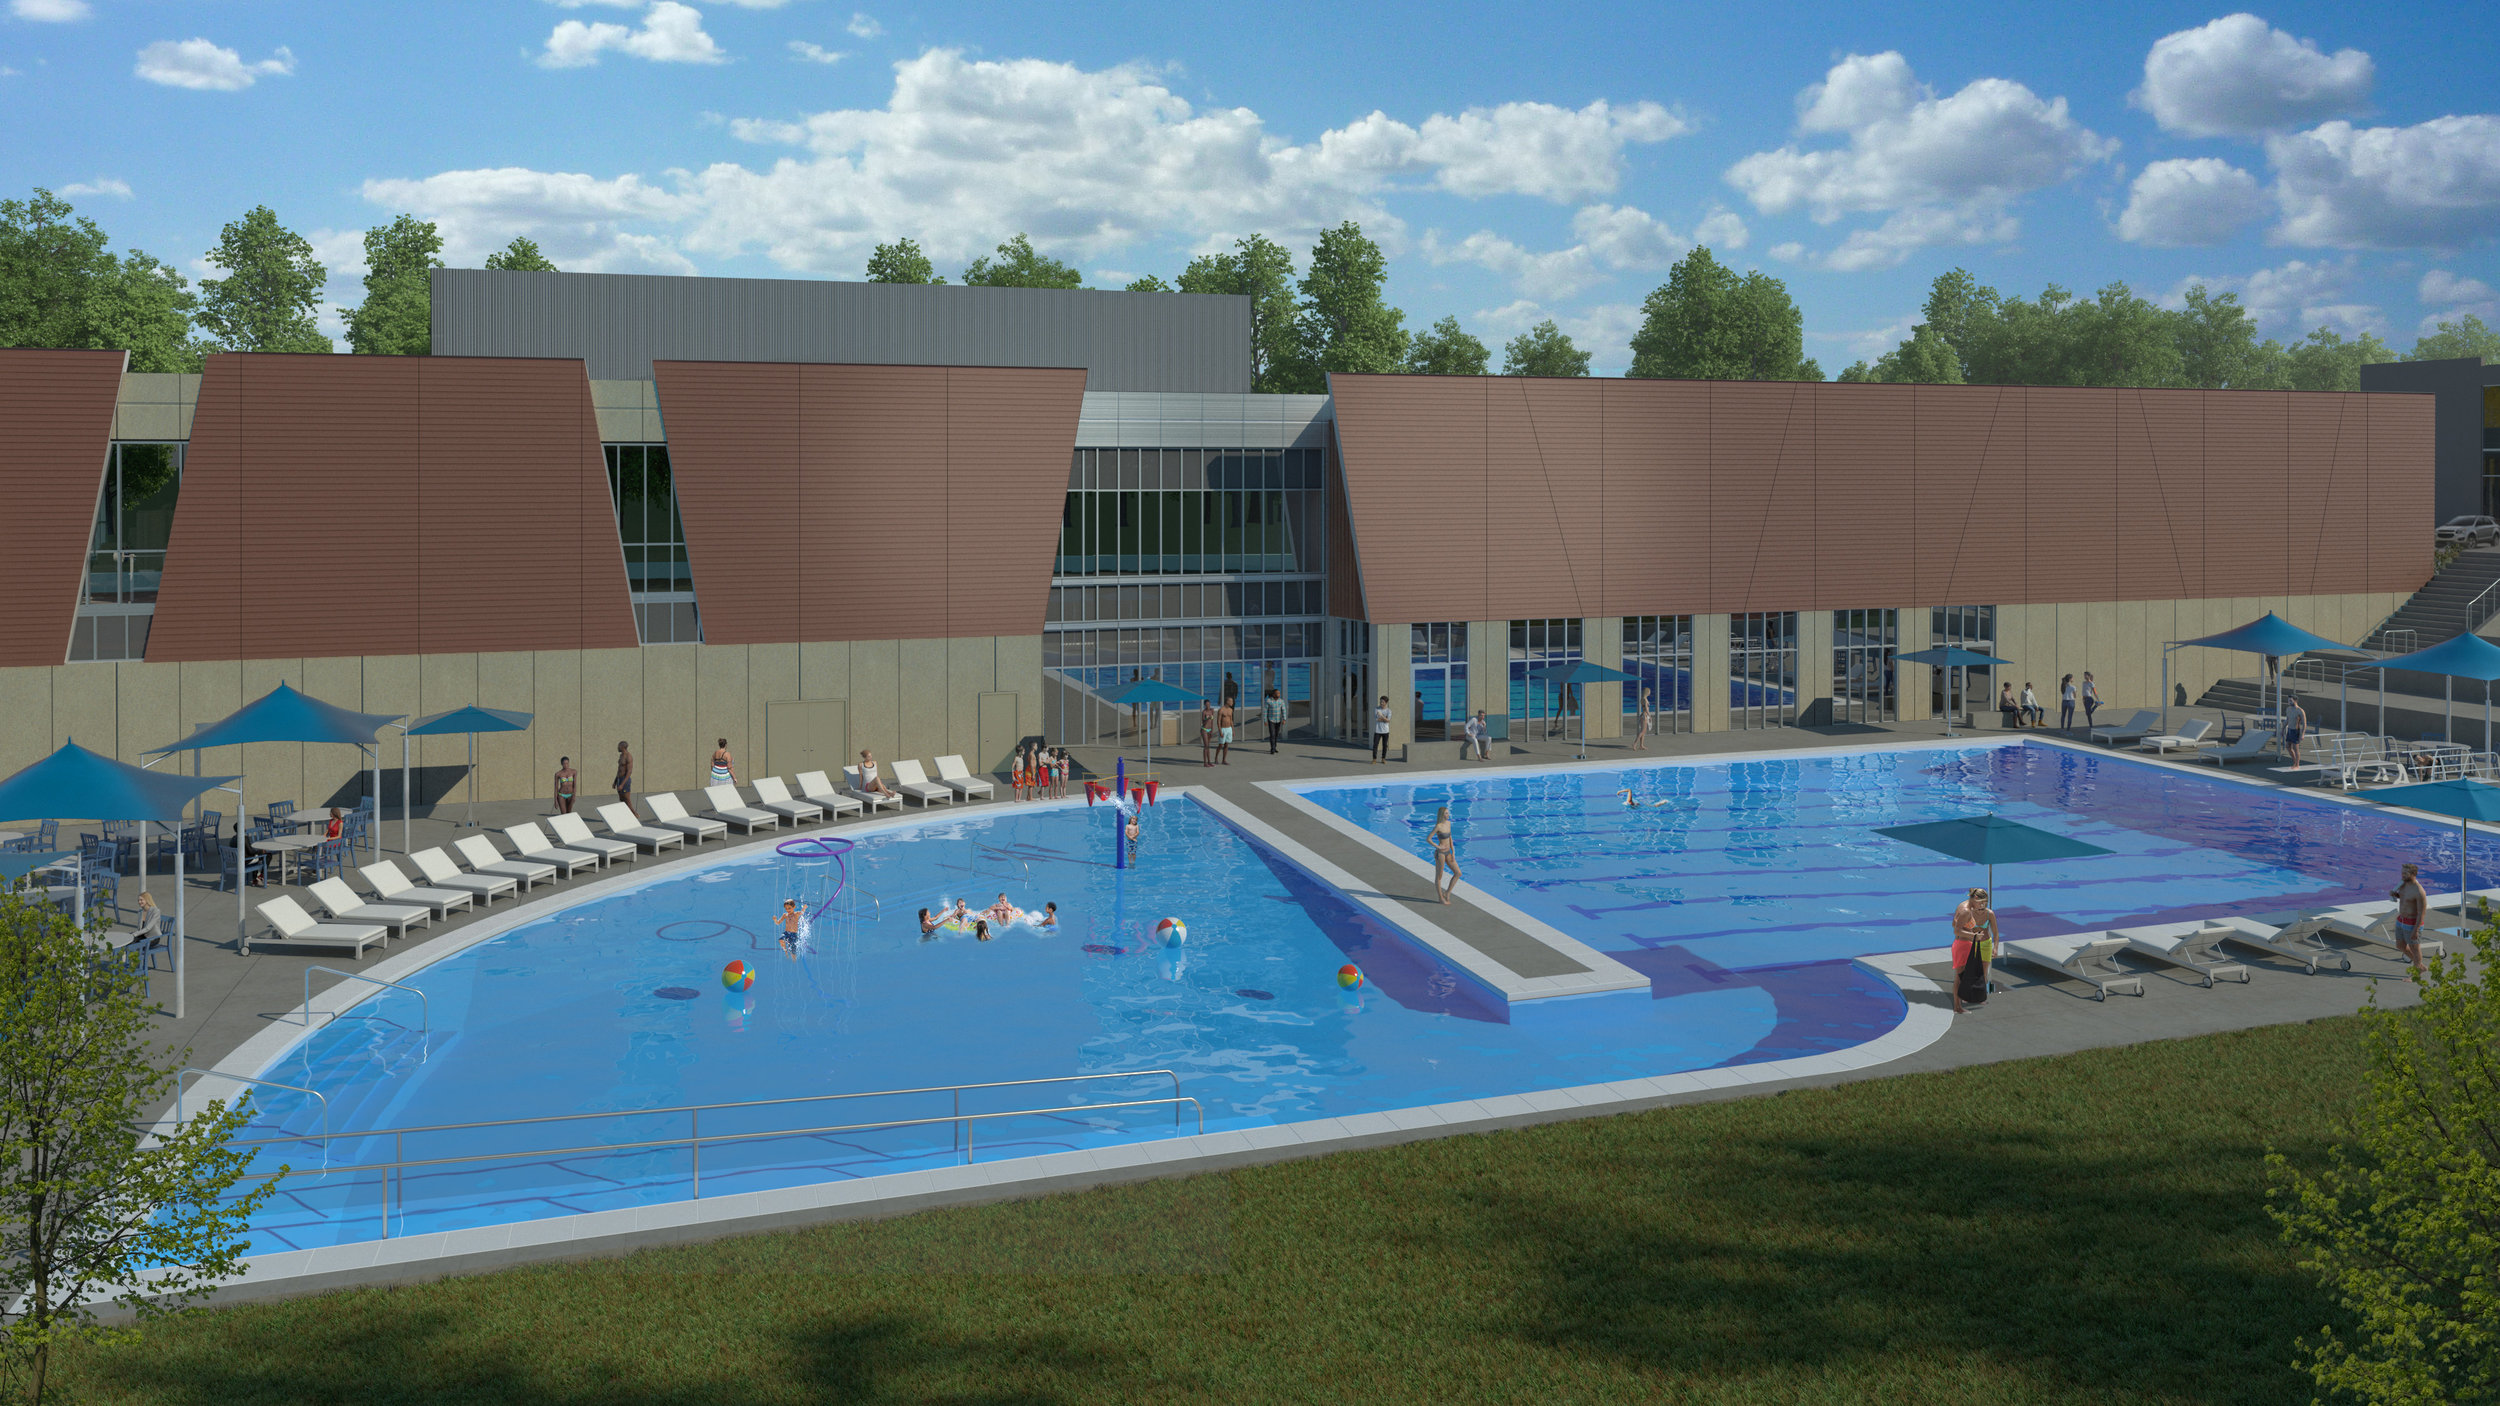 MERRIAM_EXTERIOR_POOL.jpg